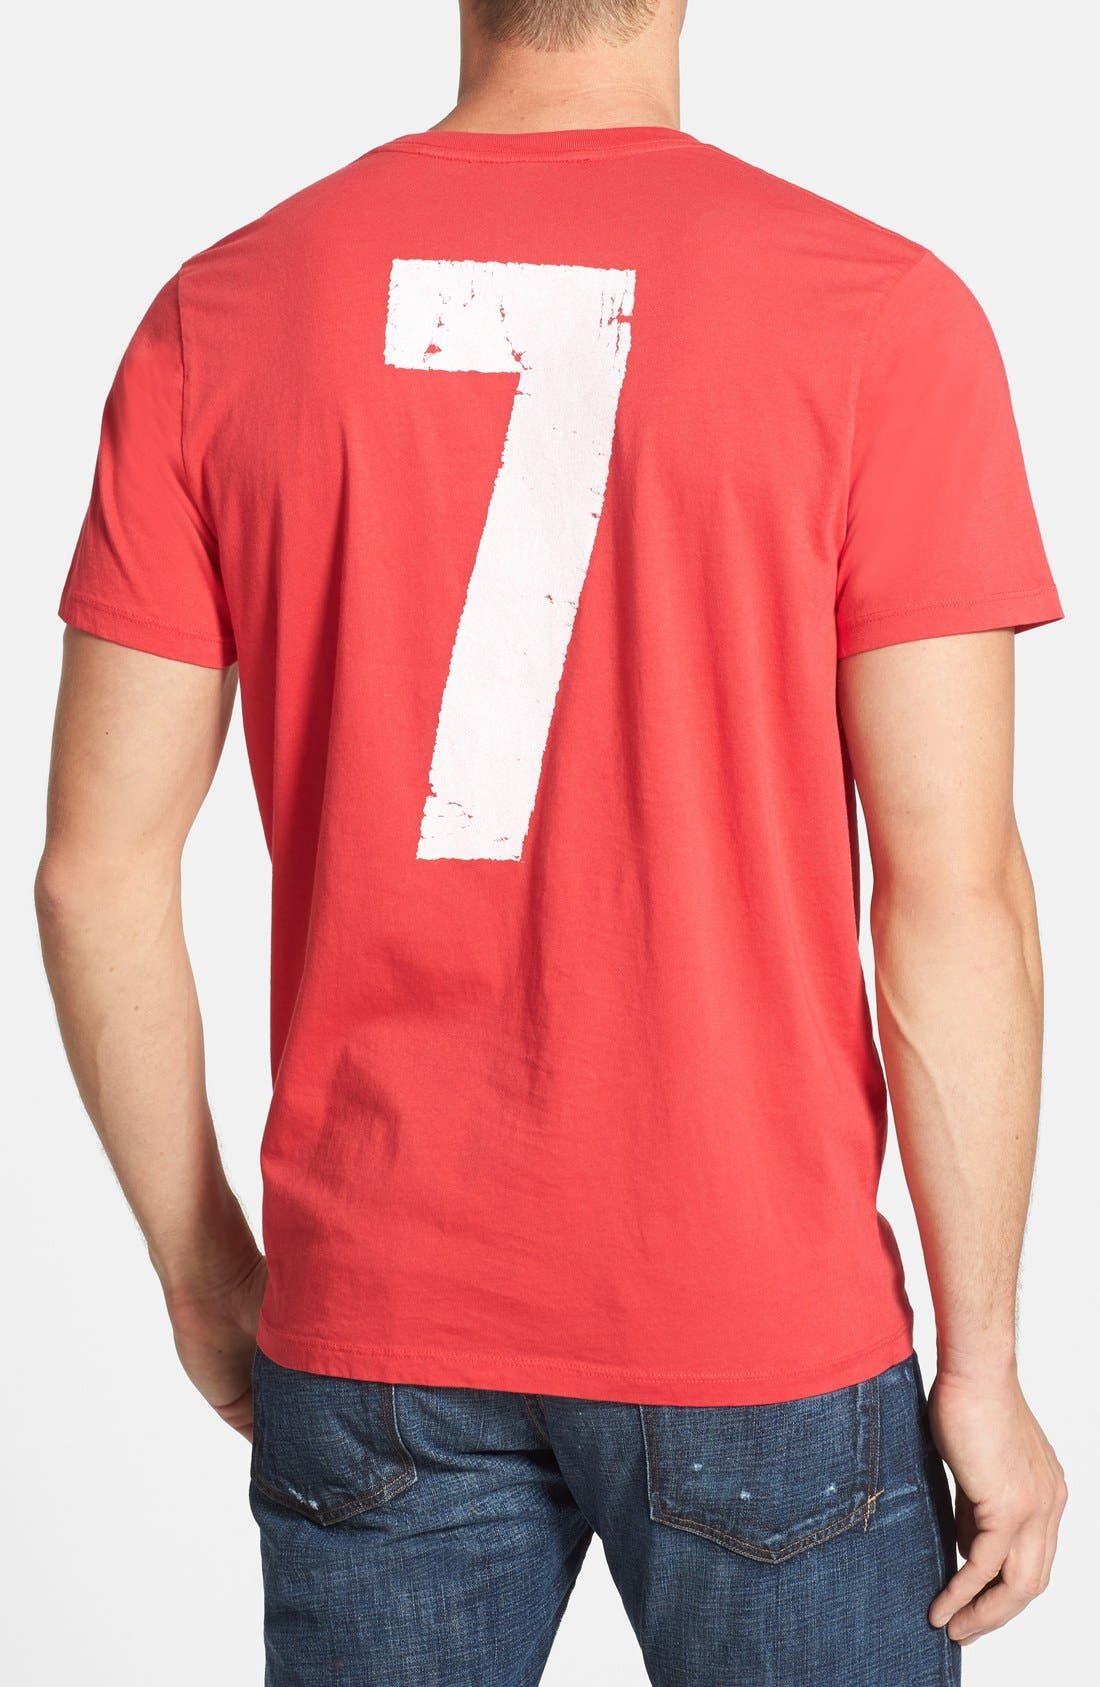 'Manchester United FC' Graphic T-Shirt,                             Alternate thumbnail 3, color,                             621